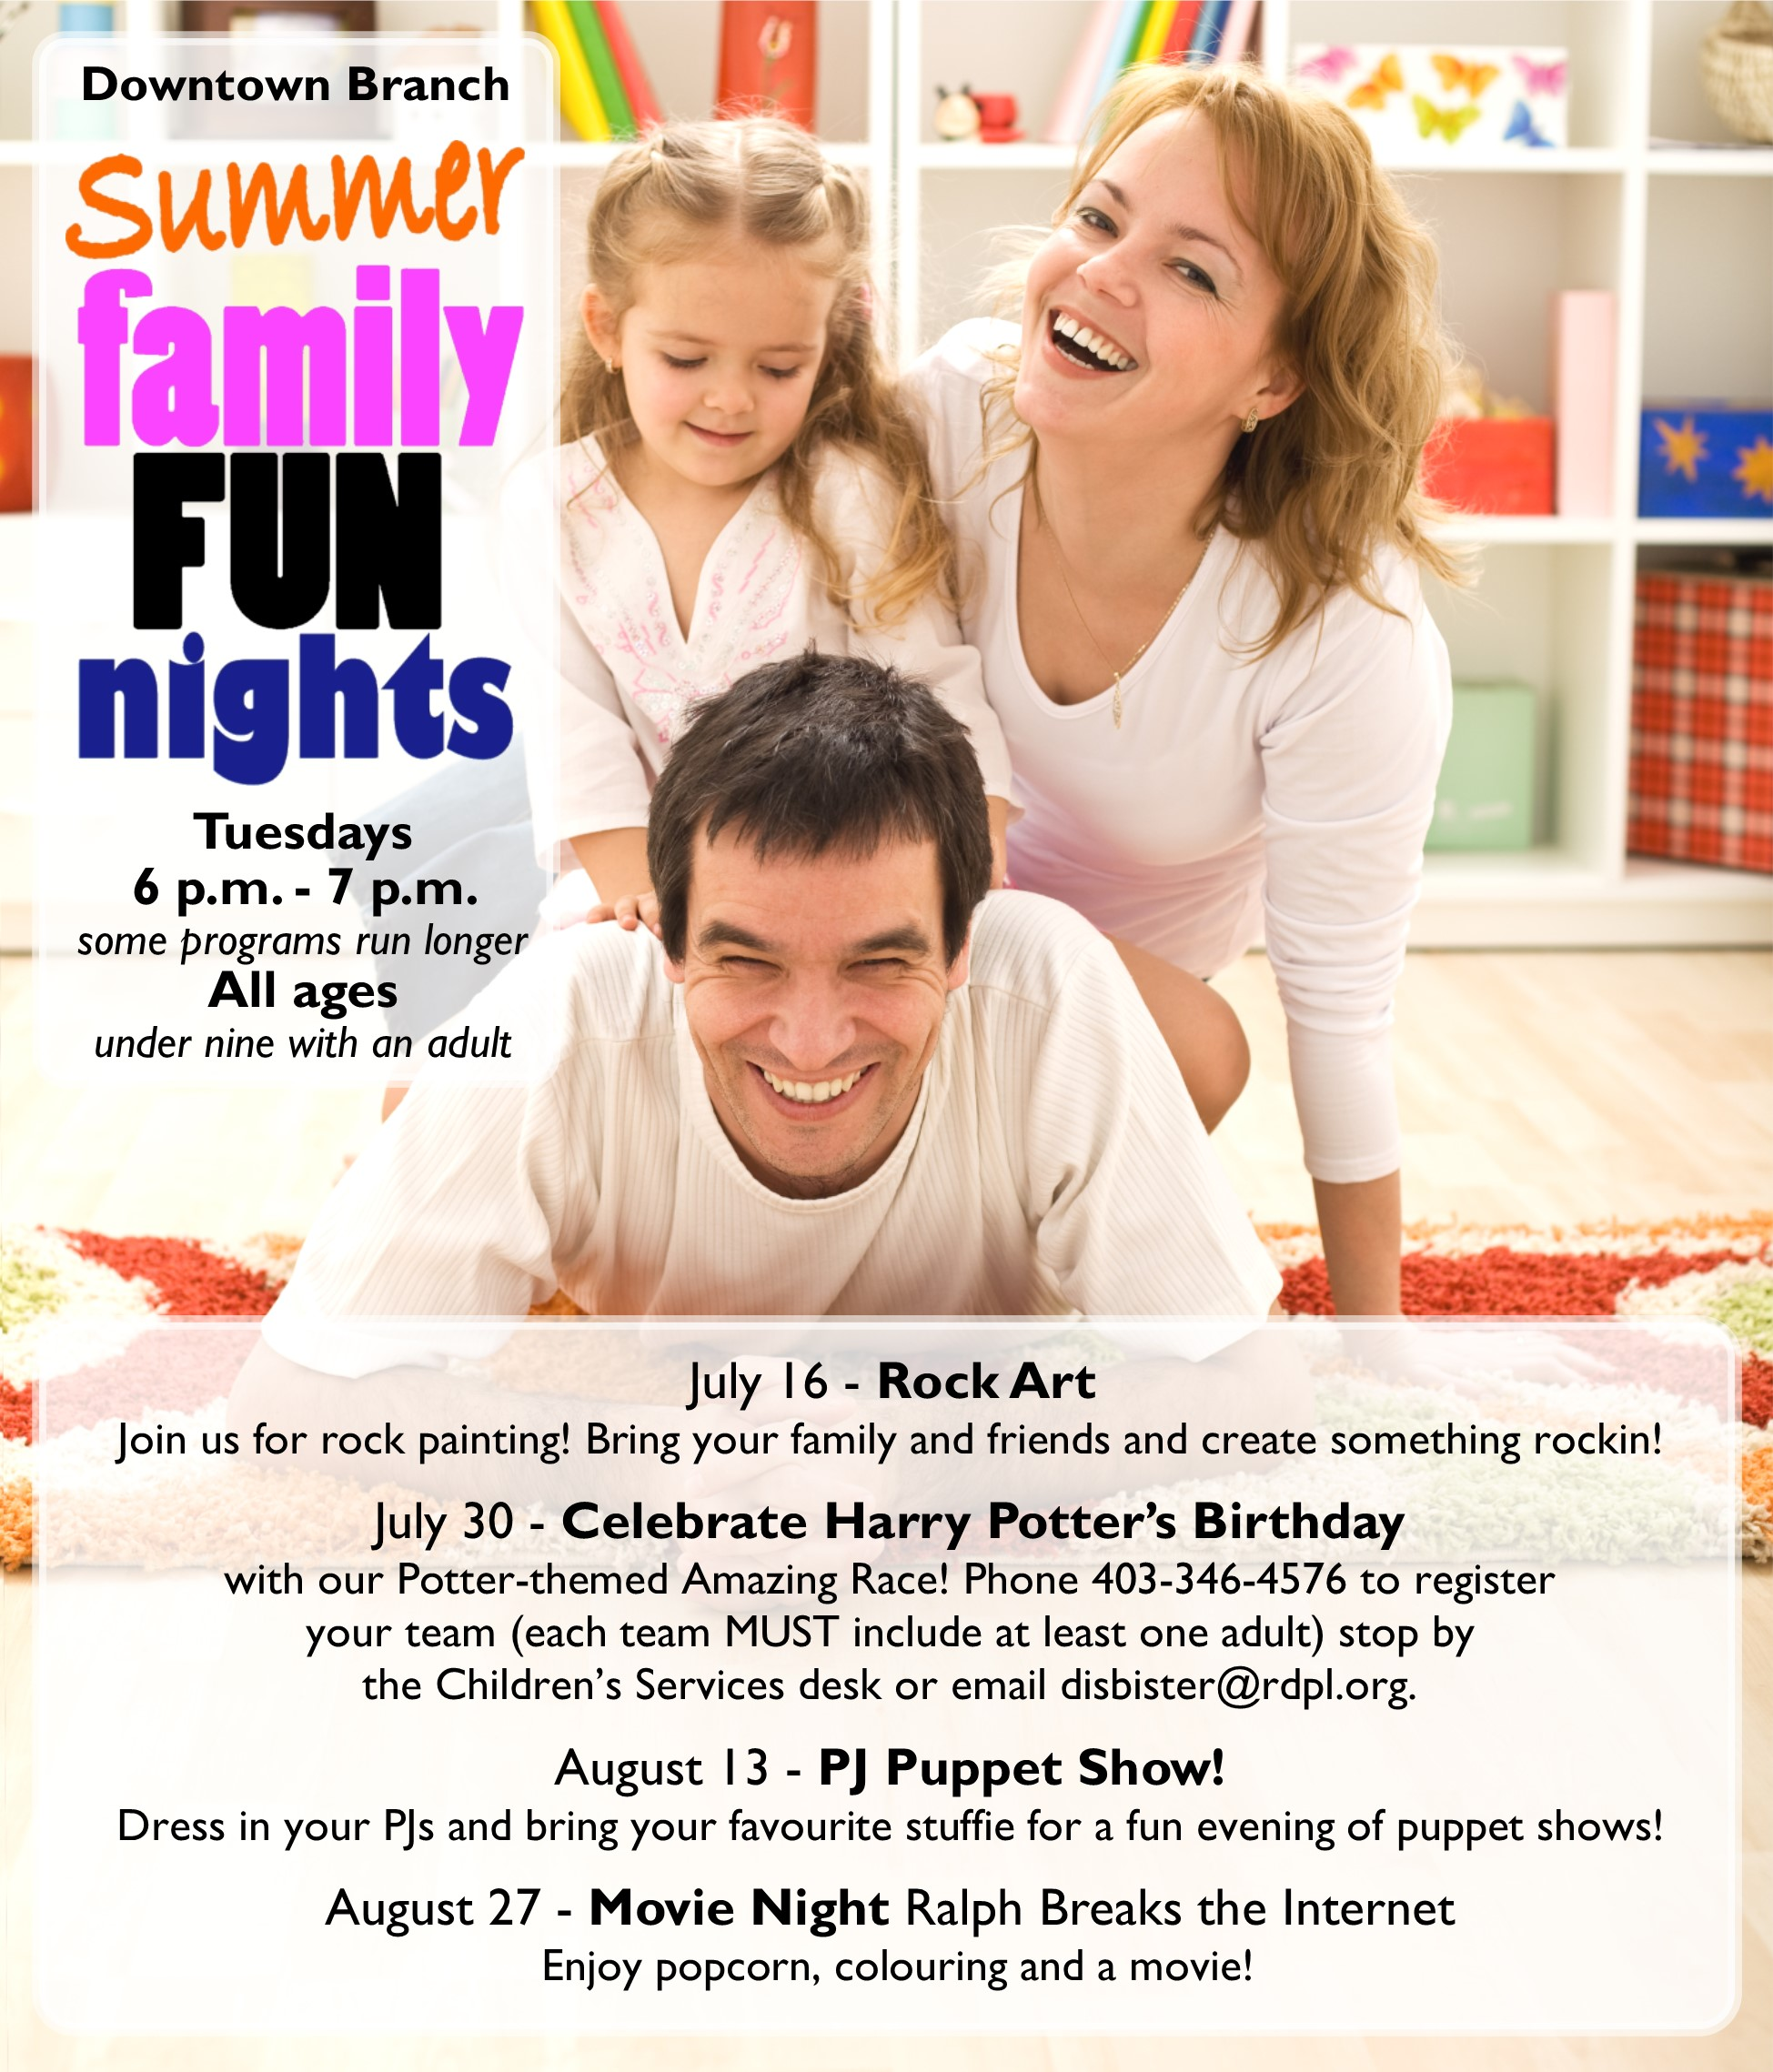 Summer Family Fun Nights